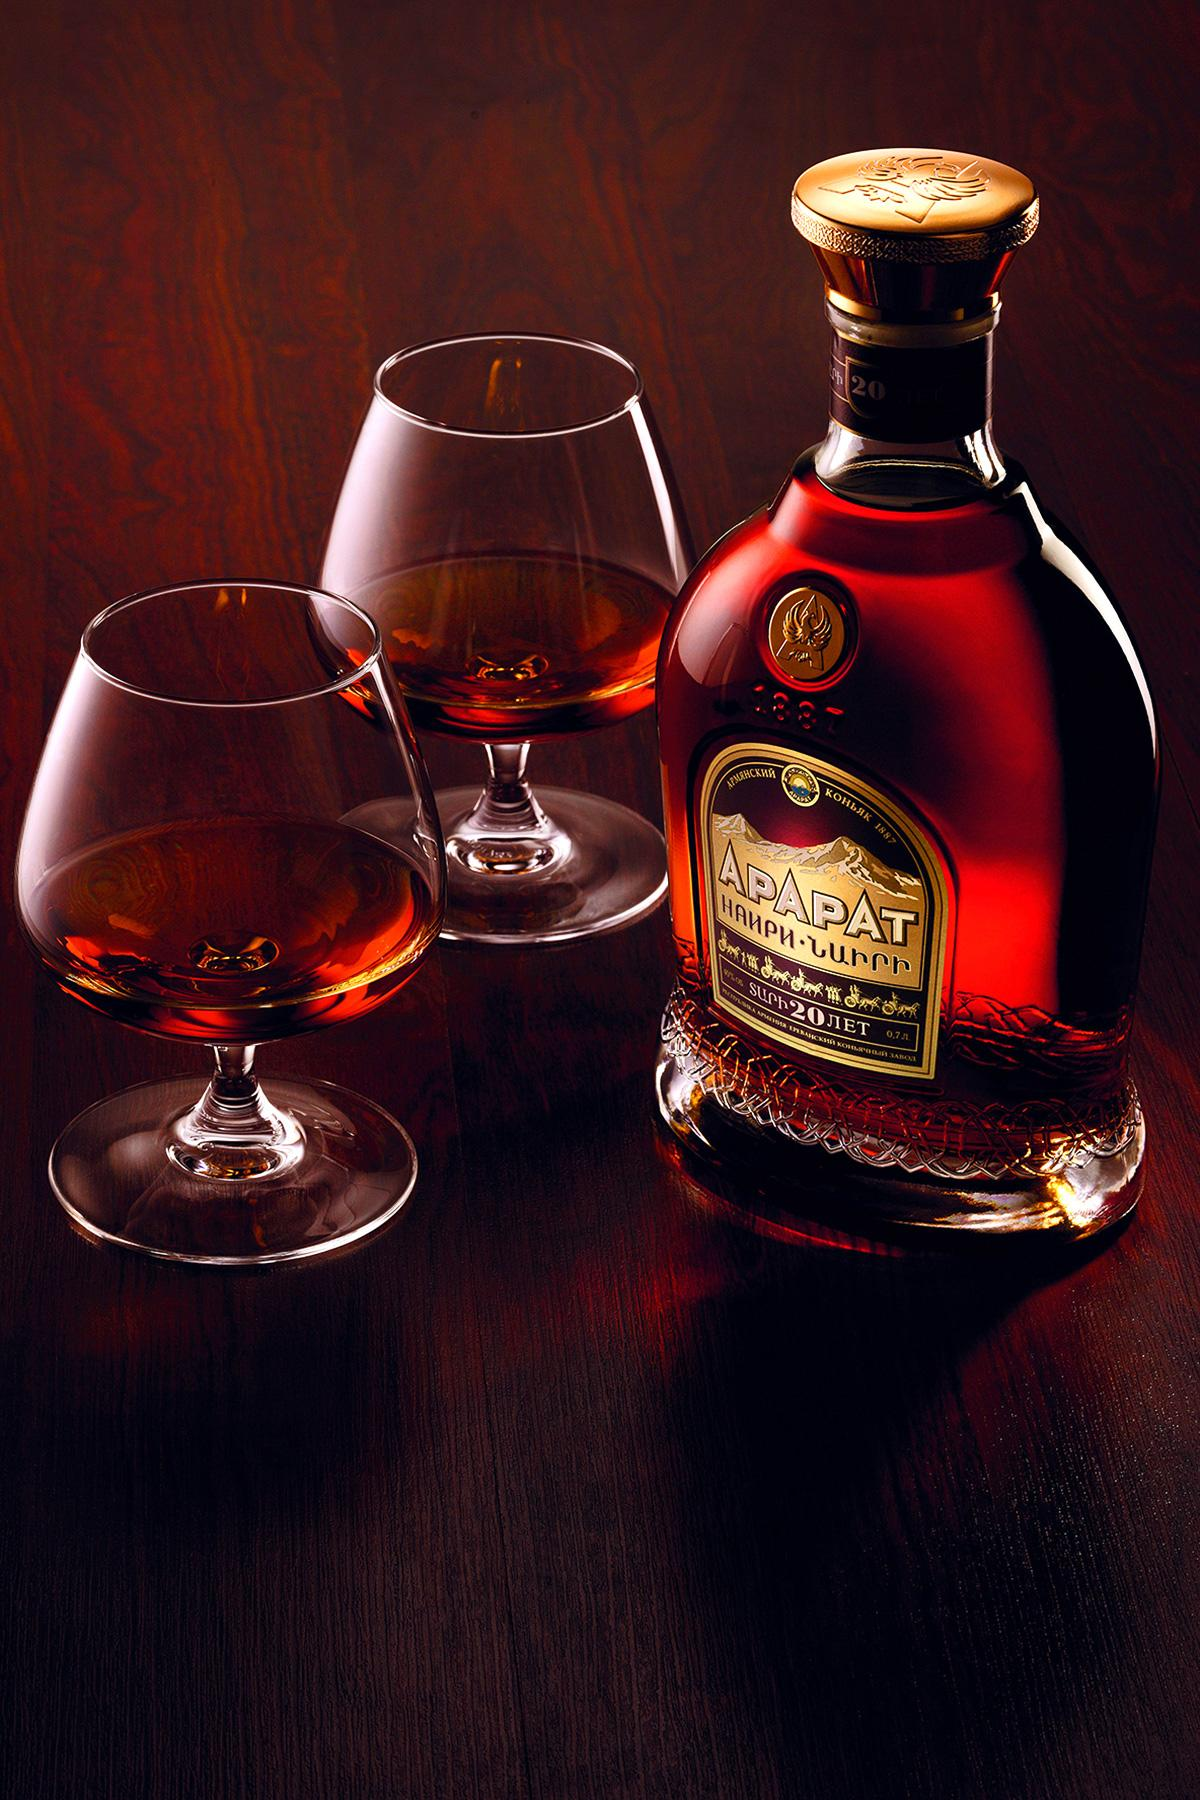 7_YervanArmenia_ChurchillFavoriteBrandy_20y_1